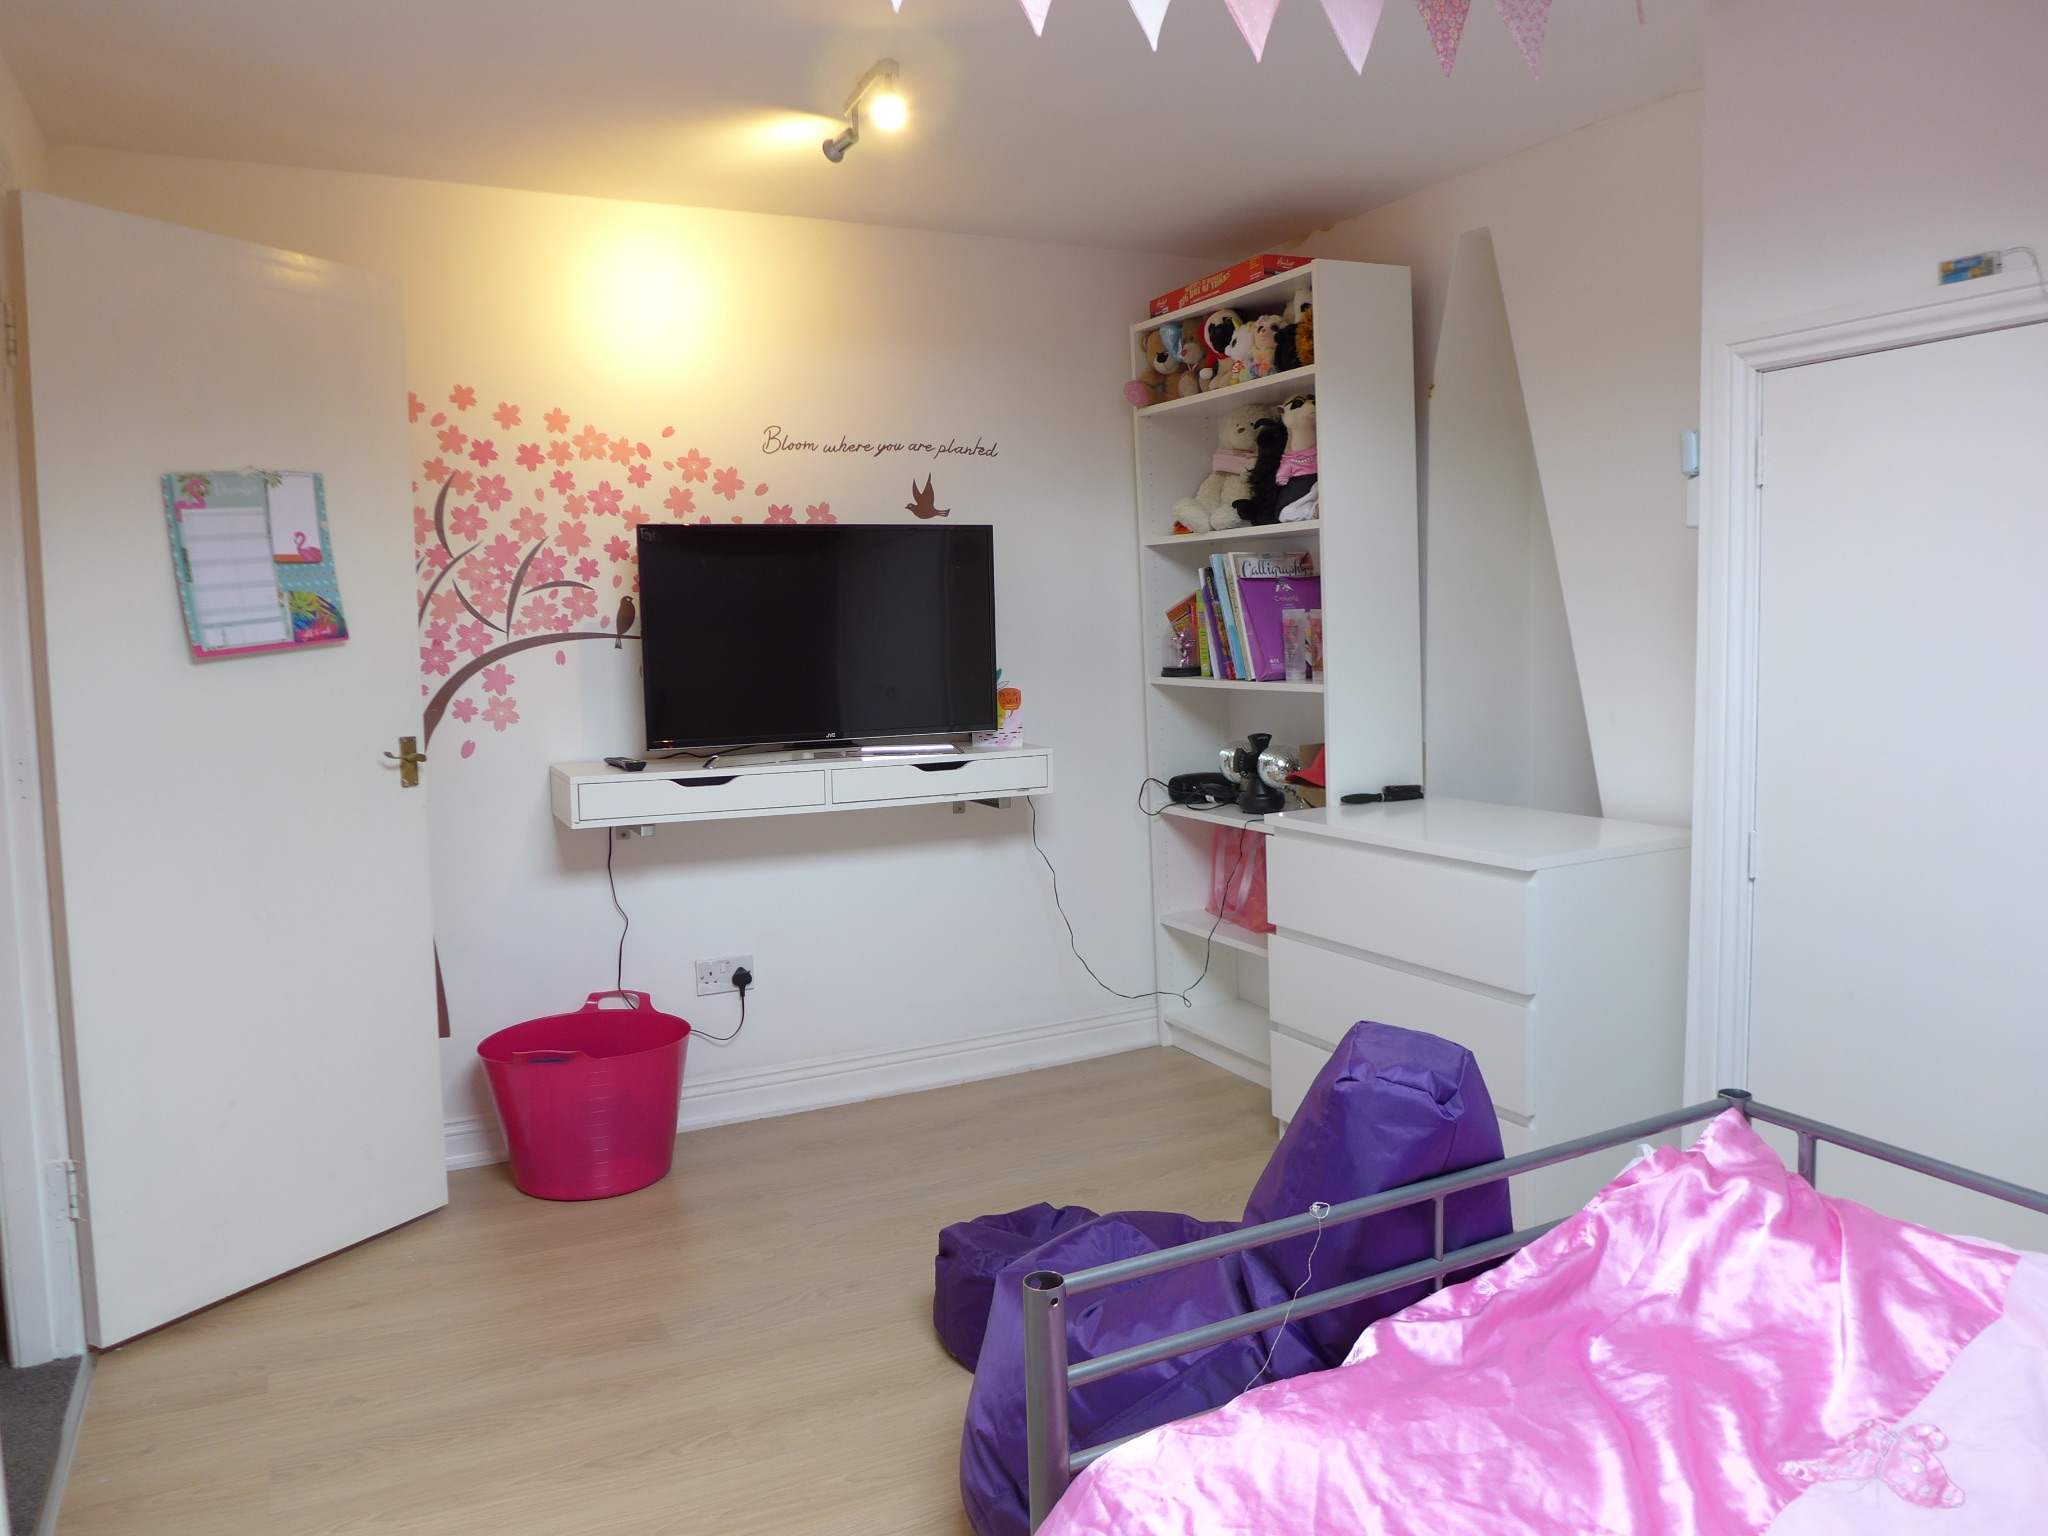 3 bedroom end terraced house For Sale in Todmorden - Photograph 14.